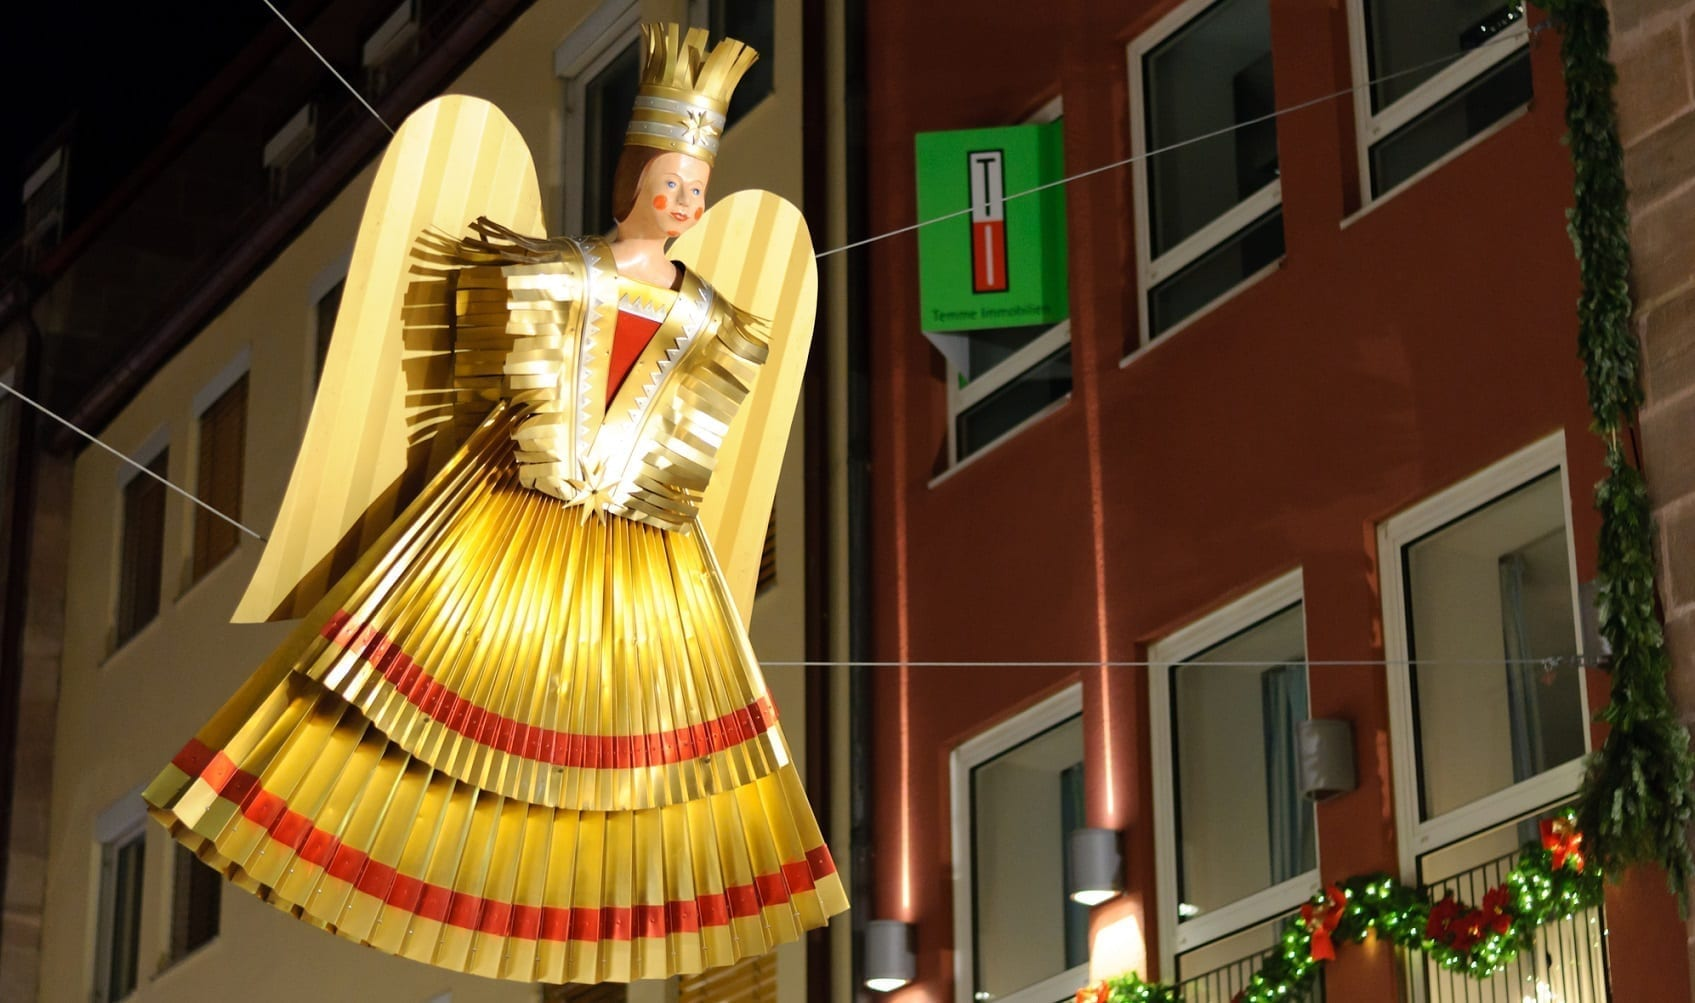 What is a Rauschgoldengel? The legend of the Golden Angel